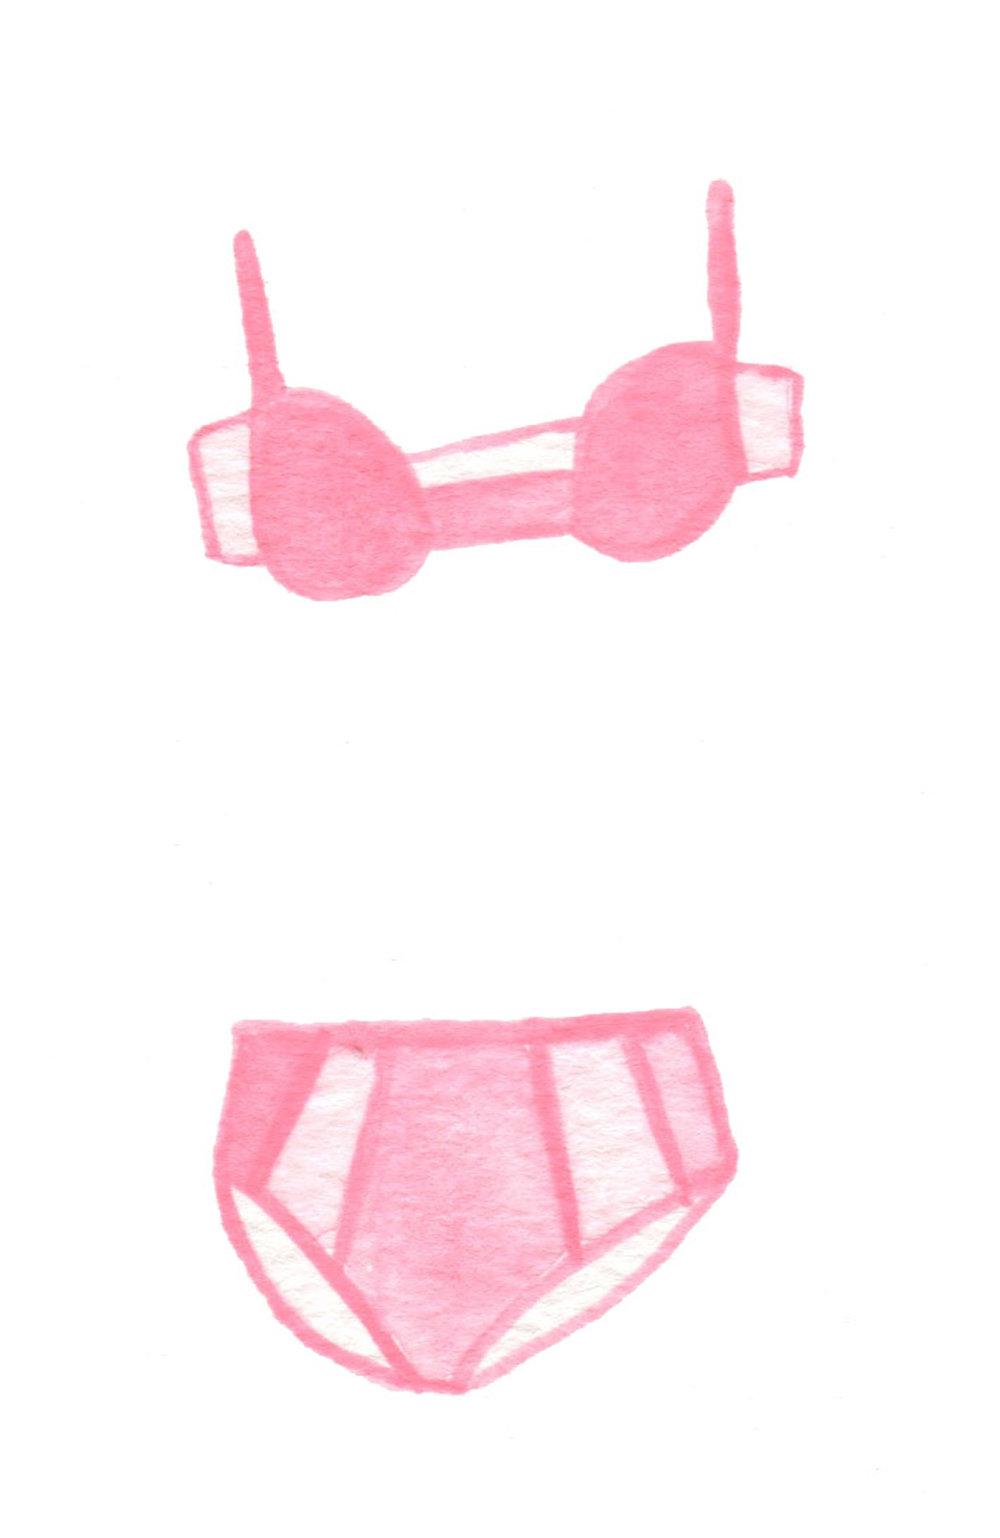 Pink Undies iPhone.jpg